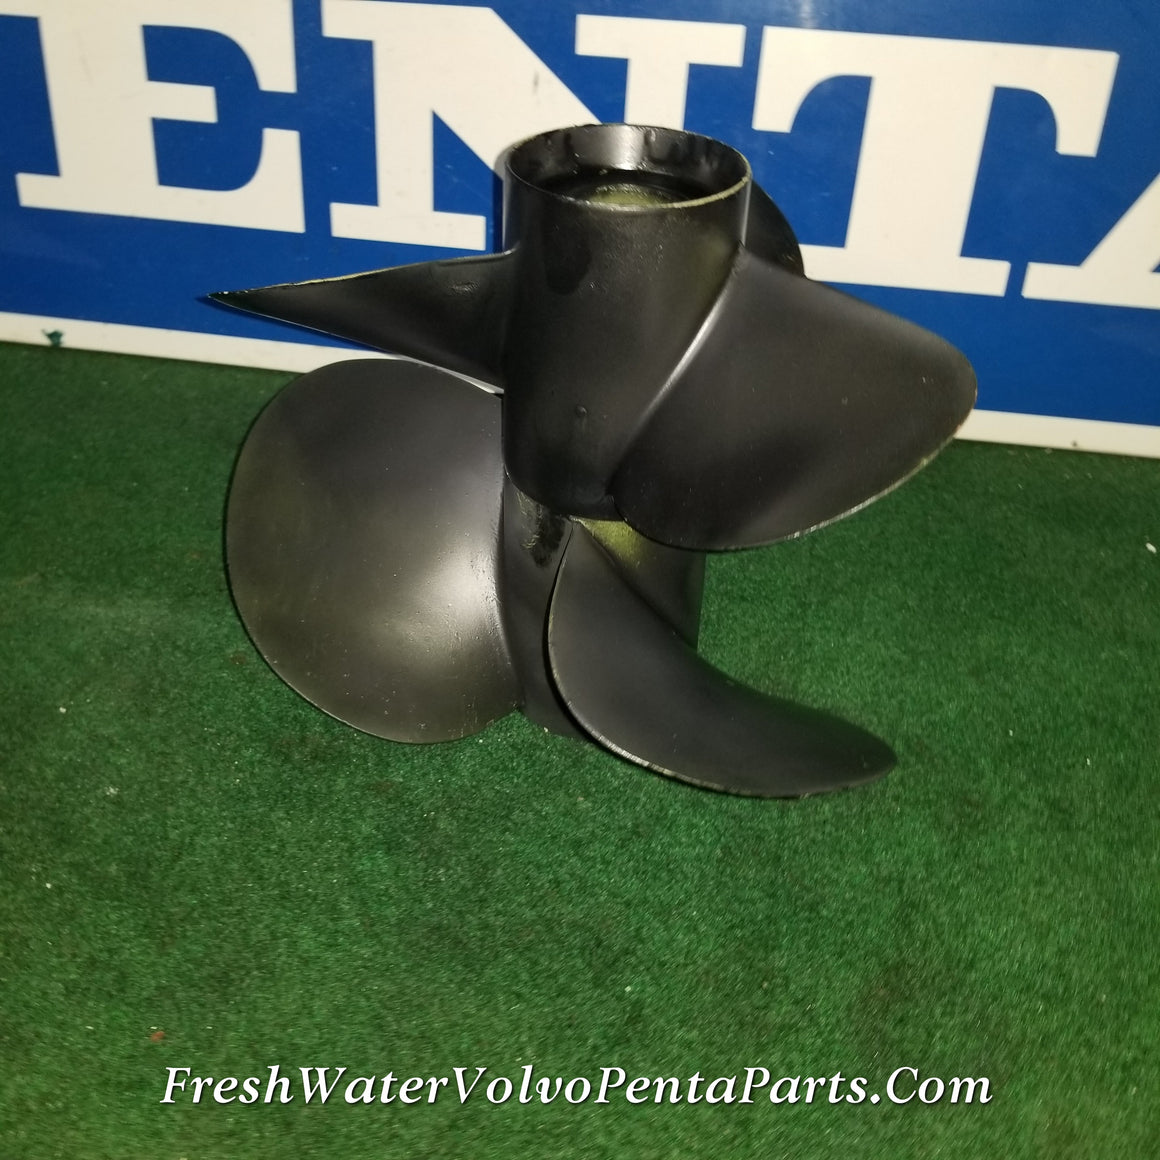 Volvo penta B4 Propellers Aluminum 854833 and 854825 280 290 Dp-A